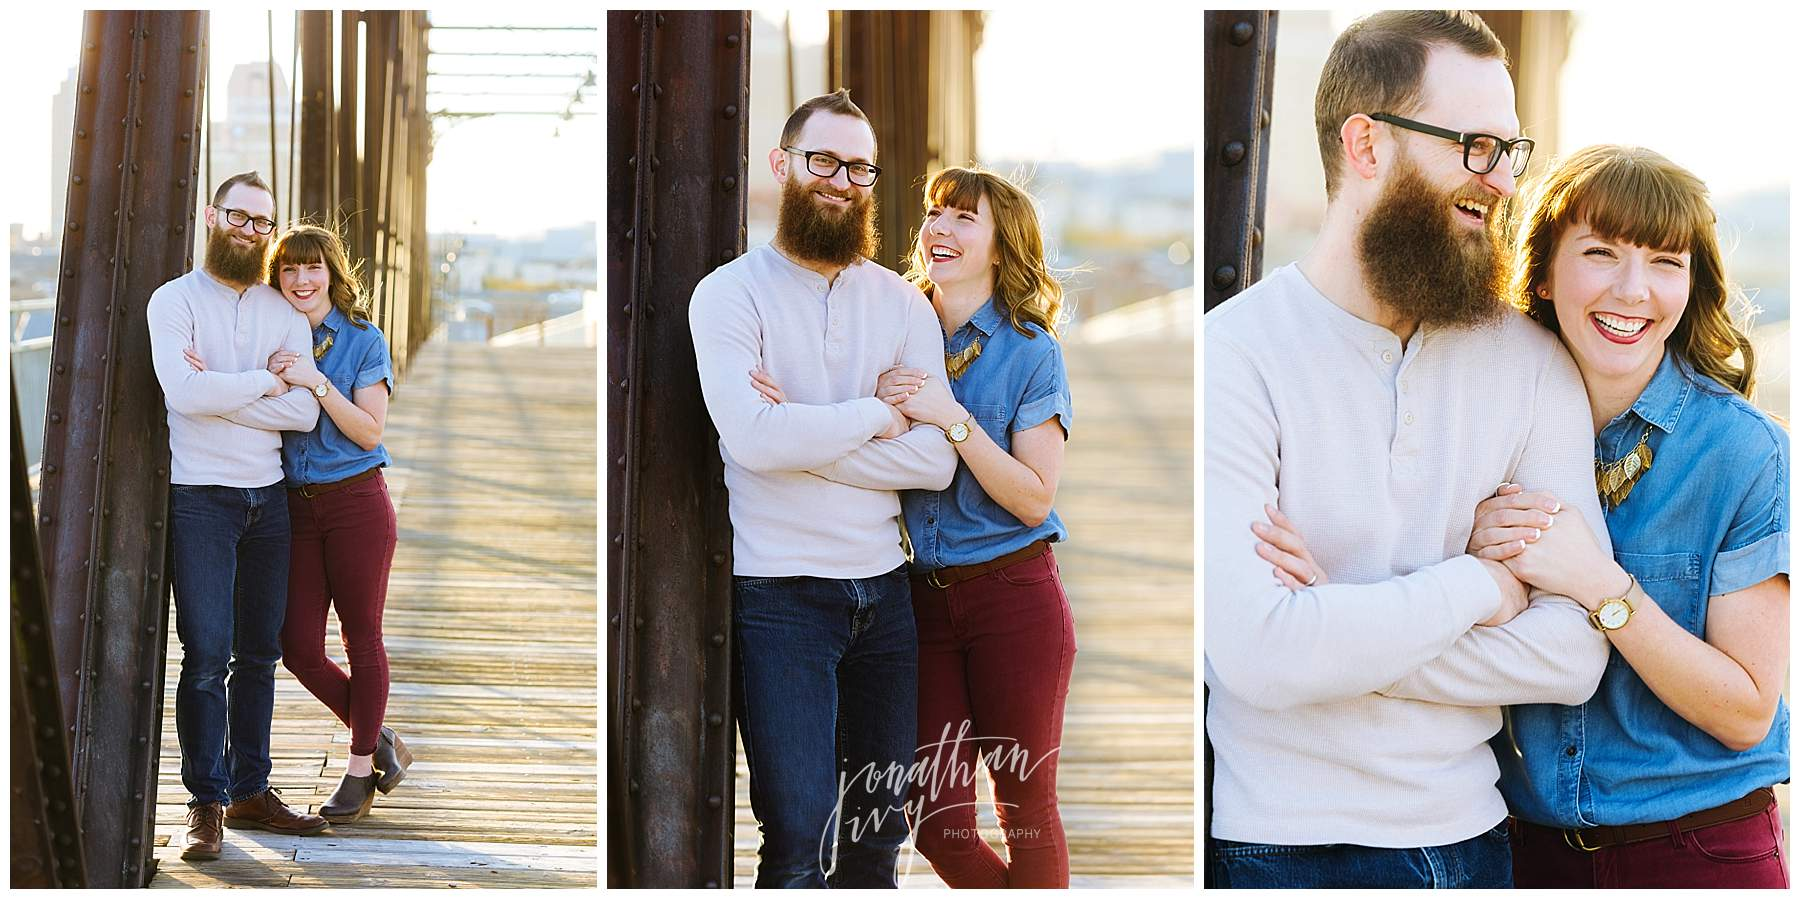 Hays Street Bridge Family Photos